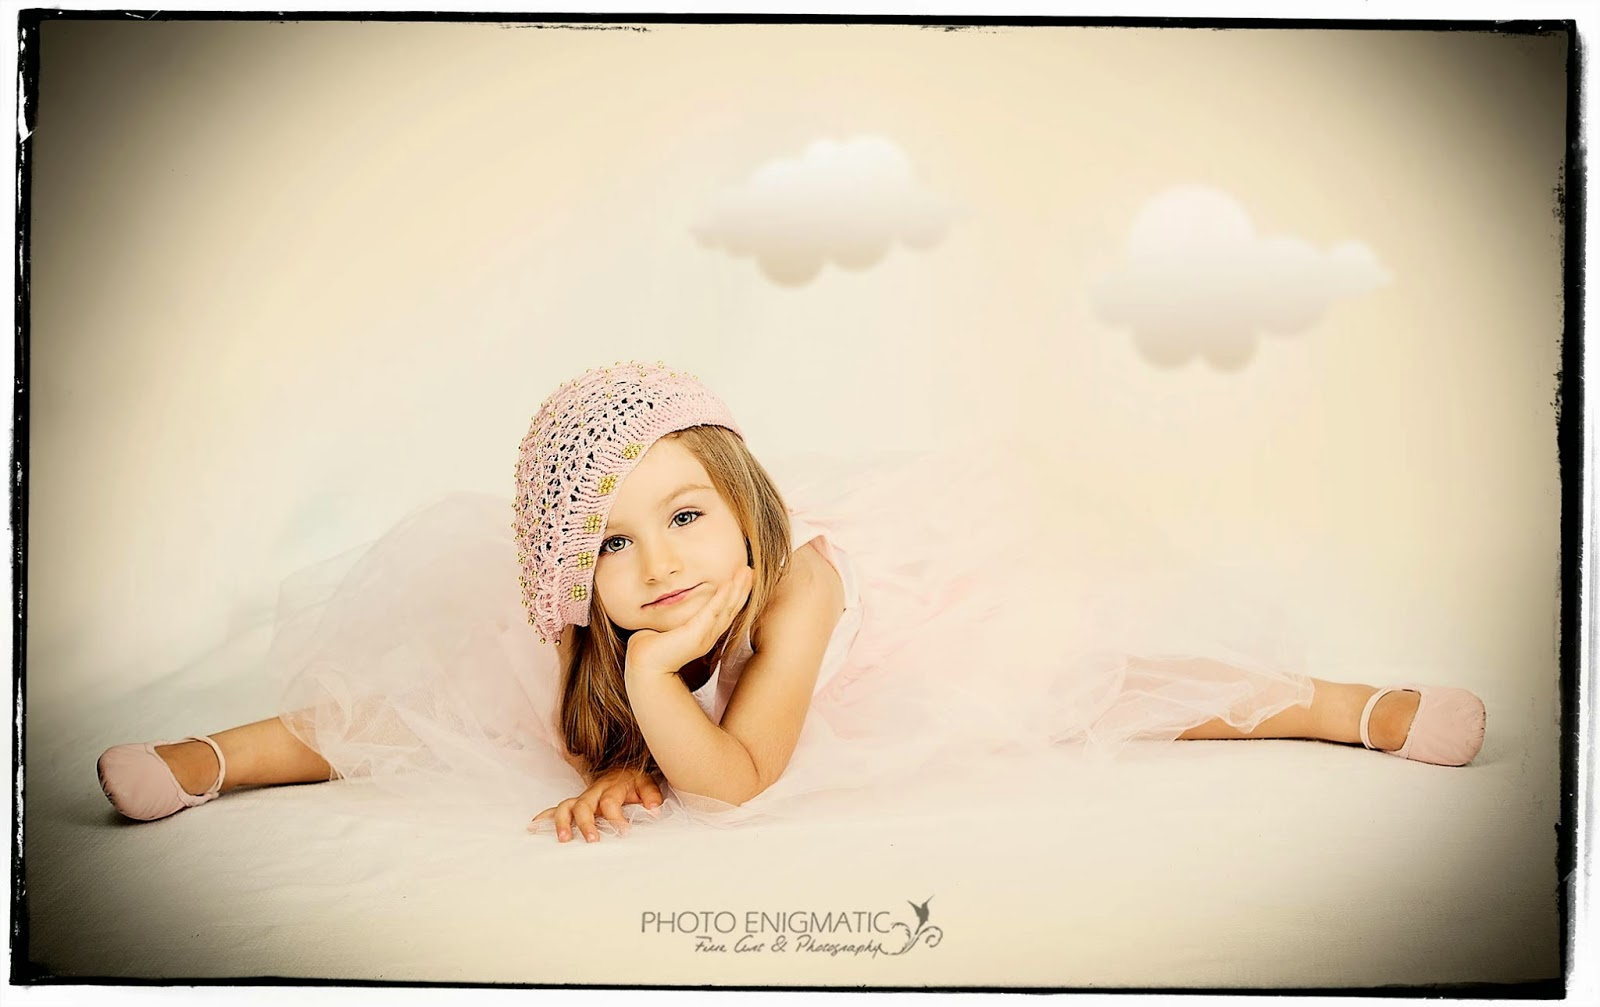 Orange County Children Photographer OC Children Photographer Children Photography Orange County OC Children Photography OC Children Portraits Best Affordable Professional